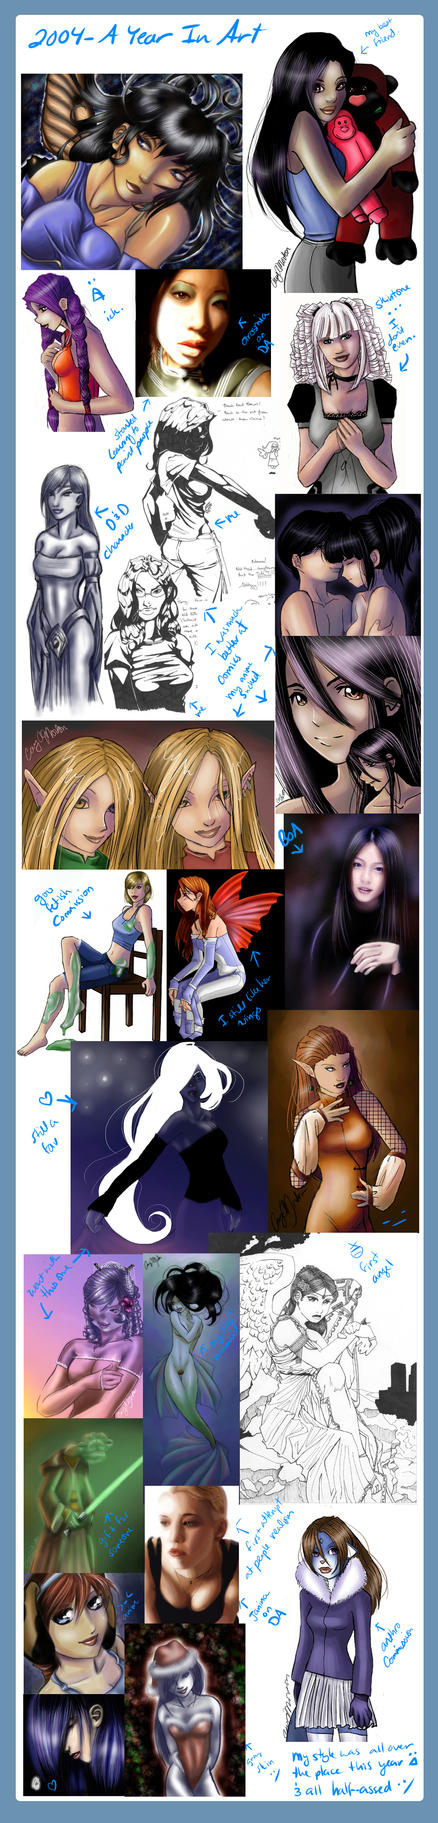 2004 - A Year In Art by DarlingMionette